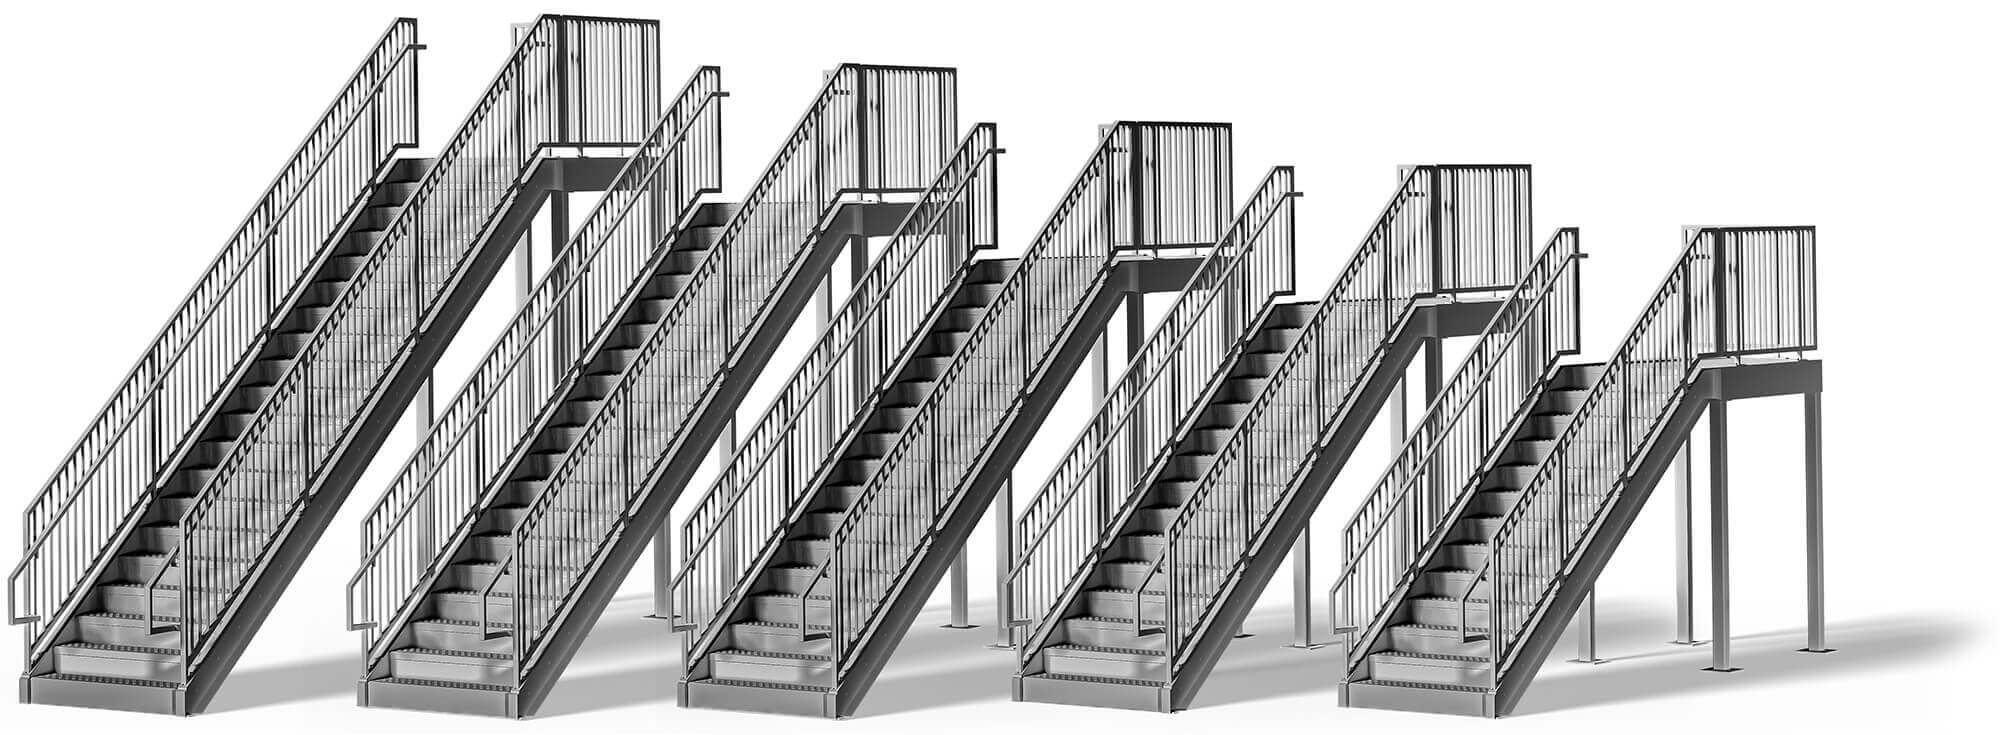 Commercial Stair Sizes